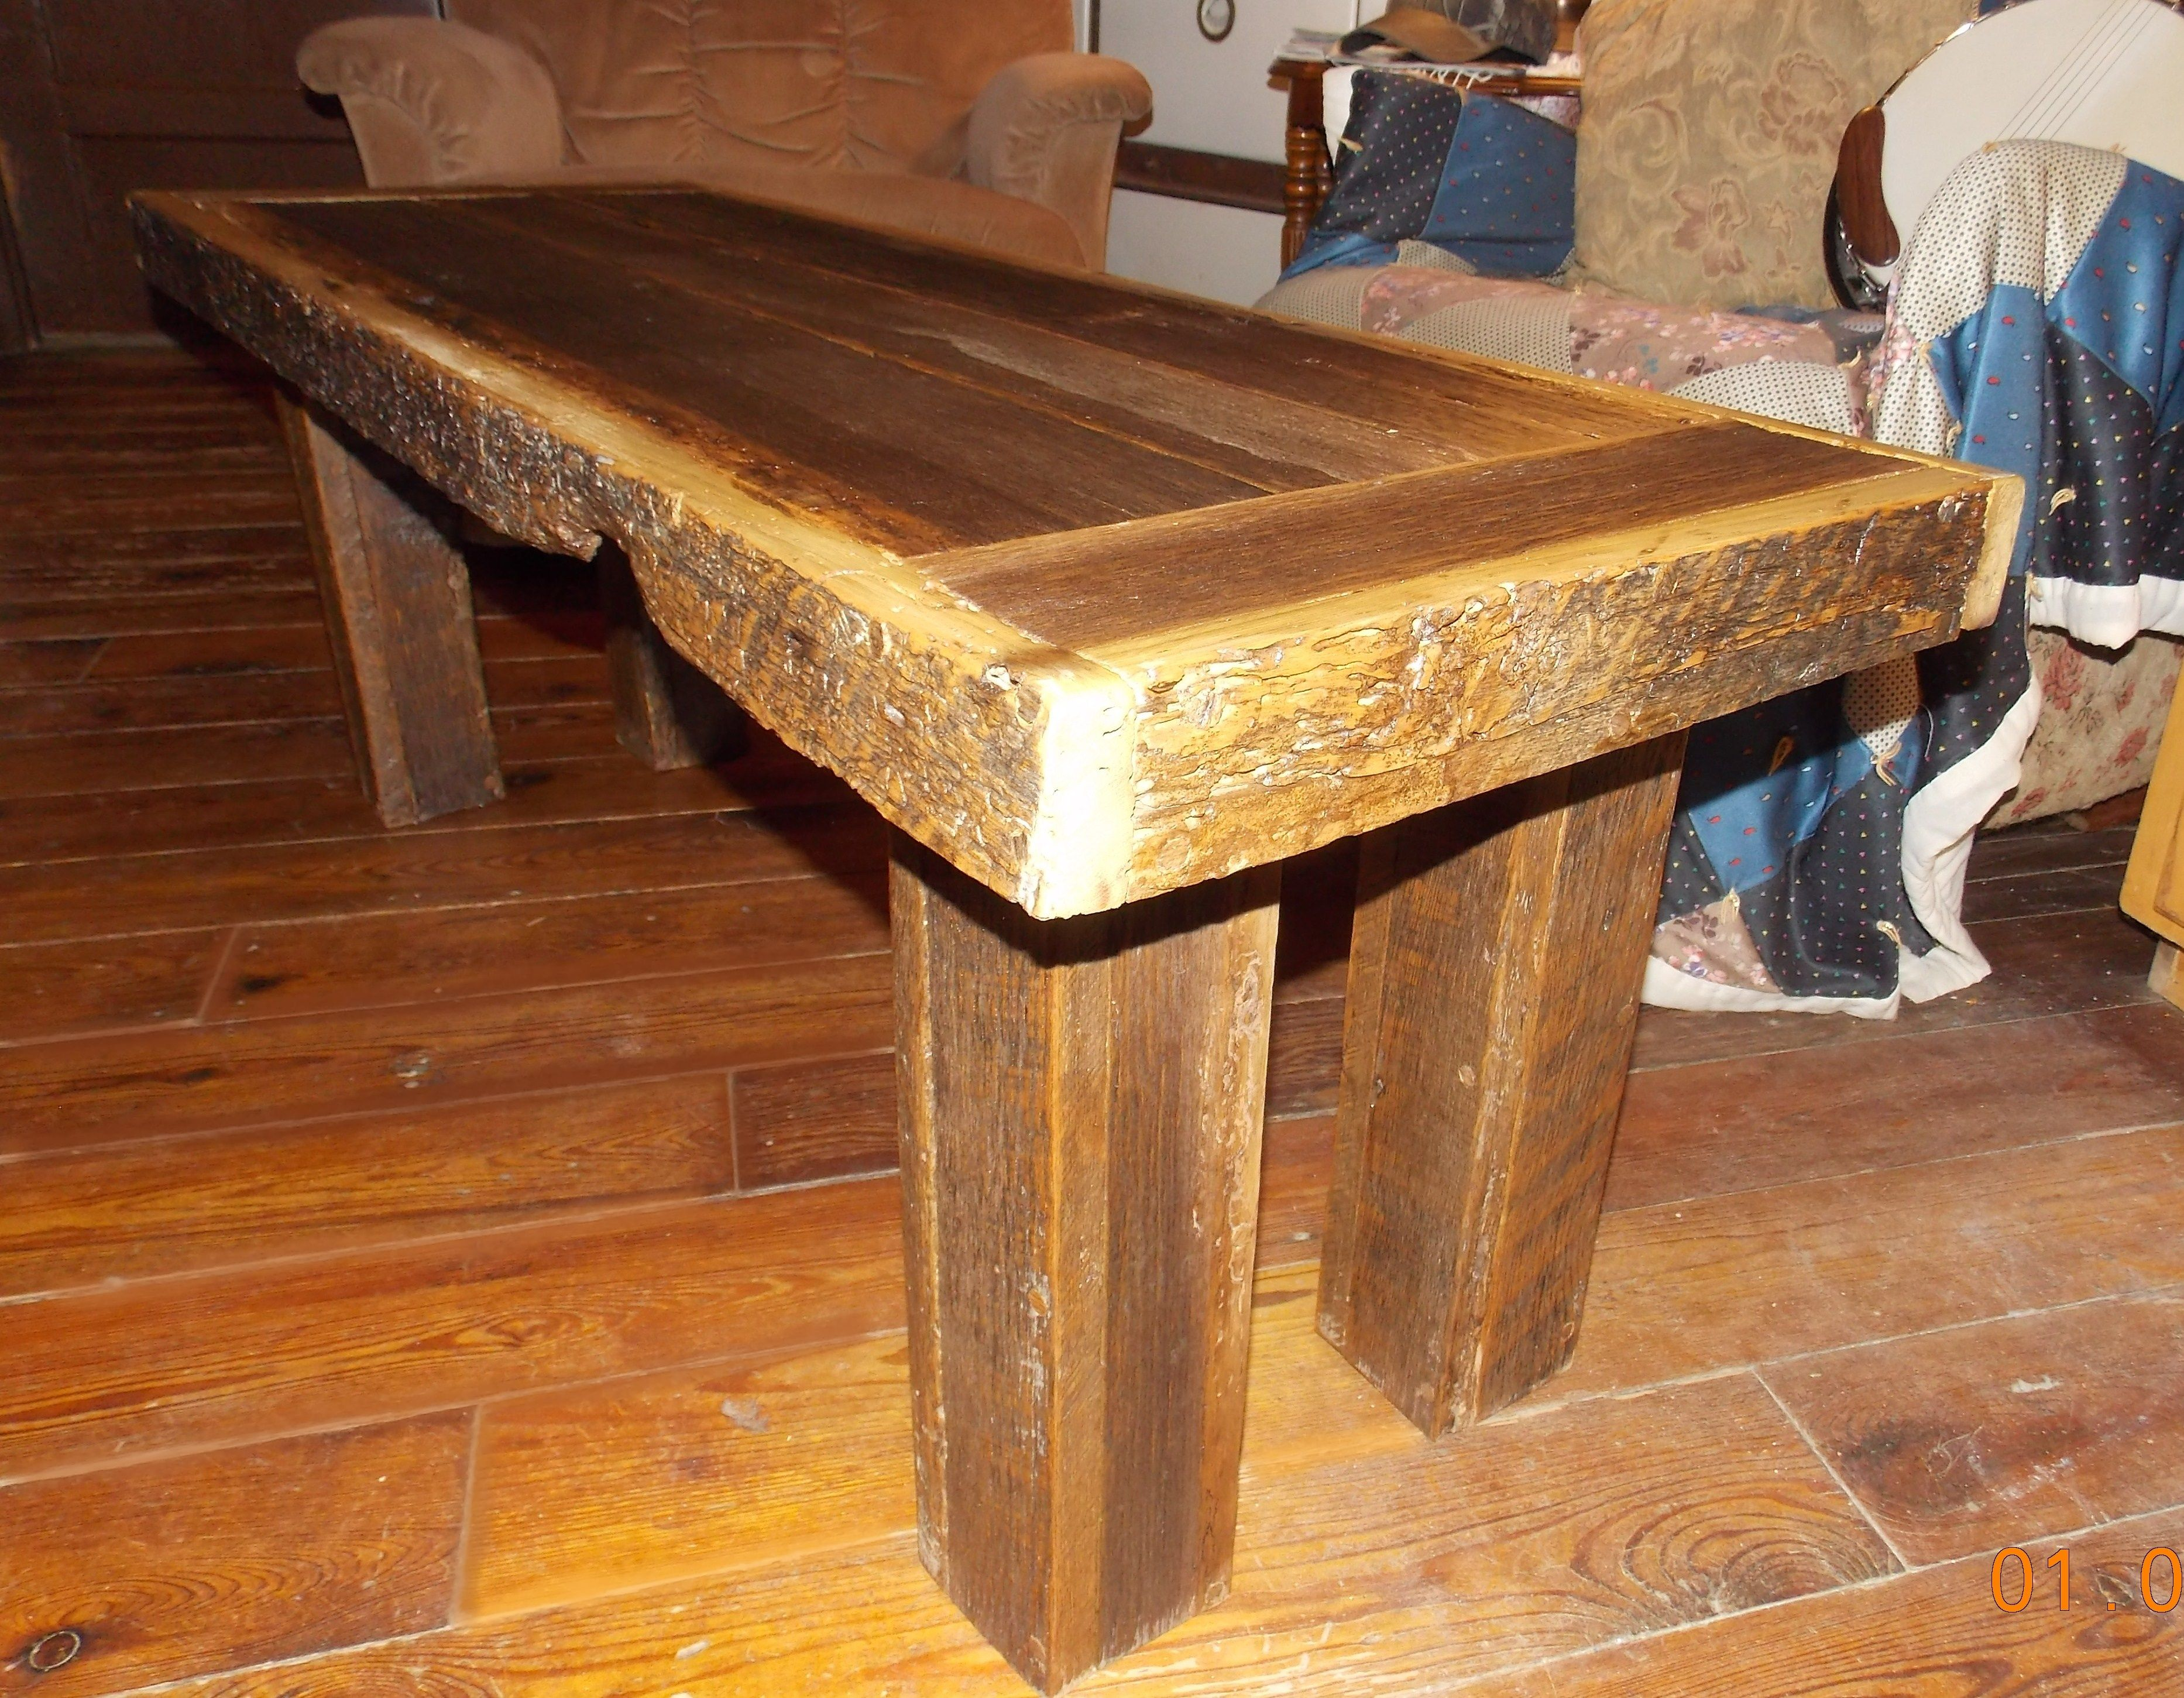 Reclaimed Barn wood Coffee table App 50 long x 17 wide x 18 tall The